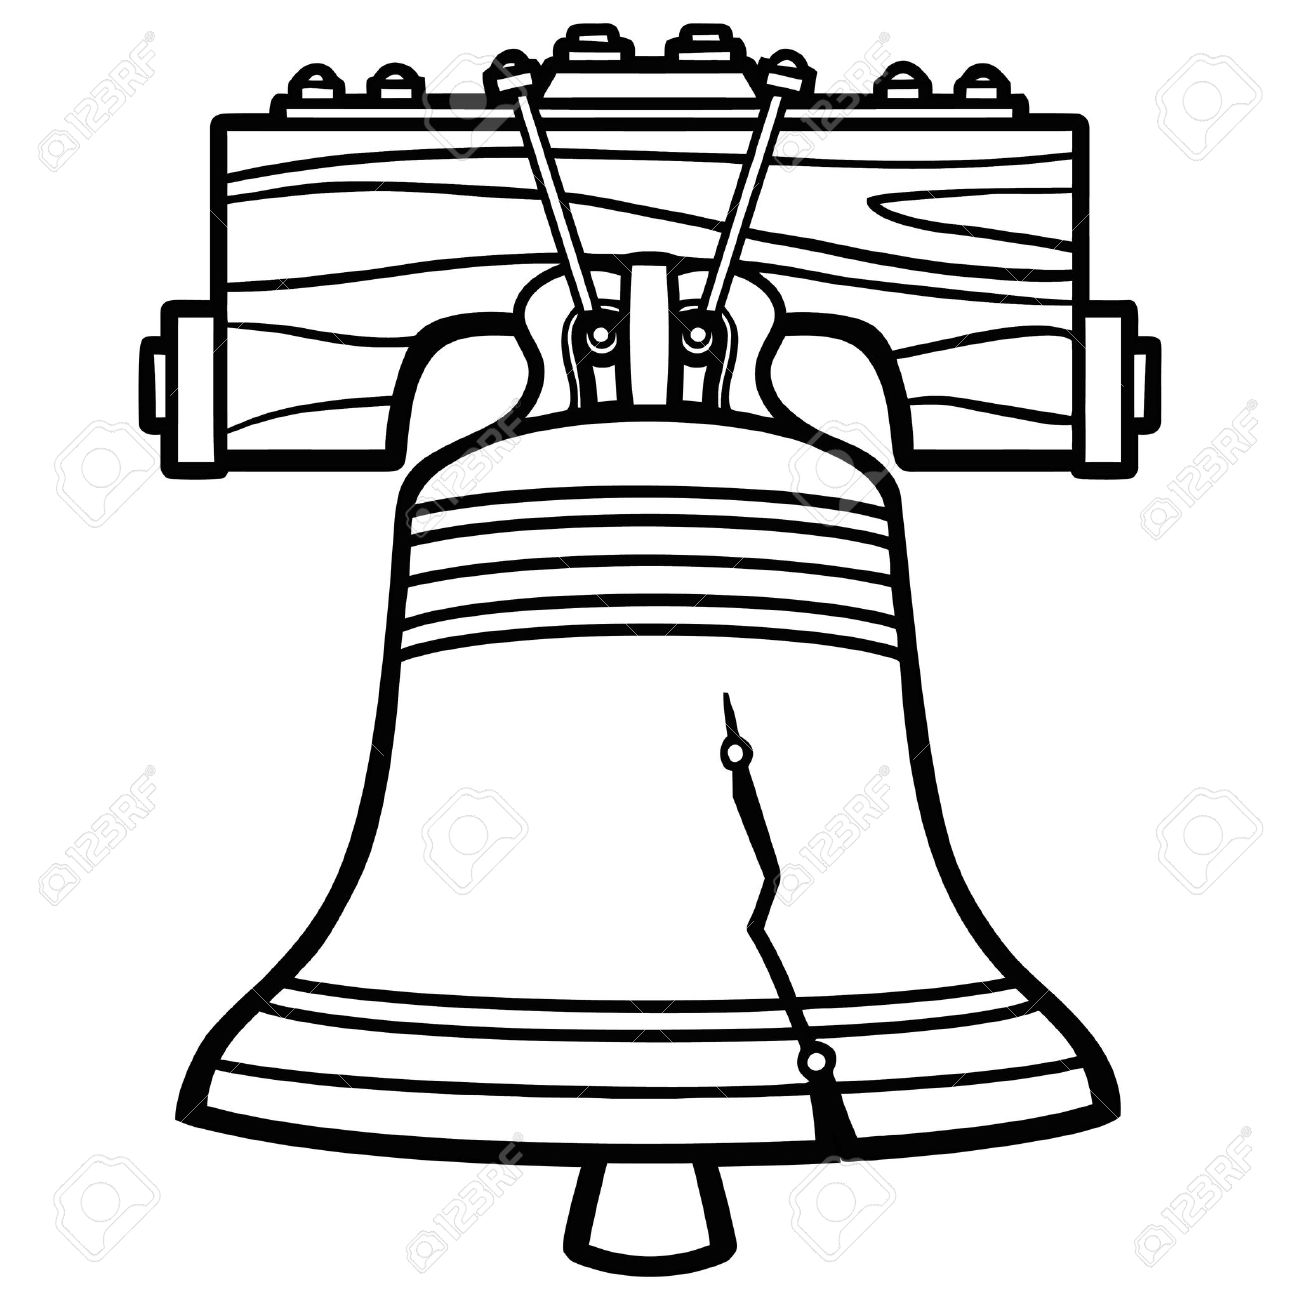 liberty bell illustration royalty free cliparts vectors and stock rh 123rf com liberty bell images clipart america liberty bell clip art